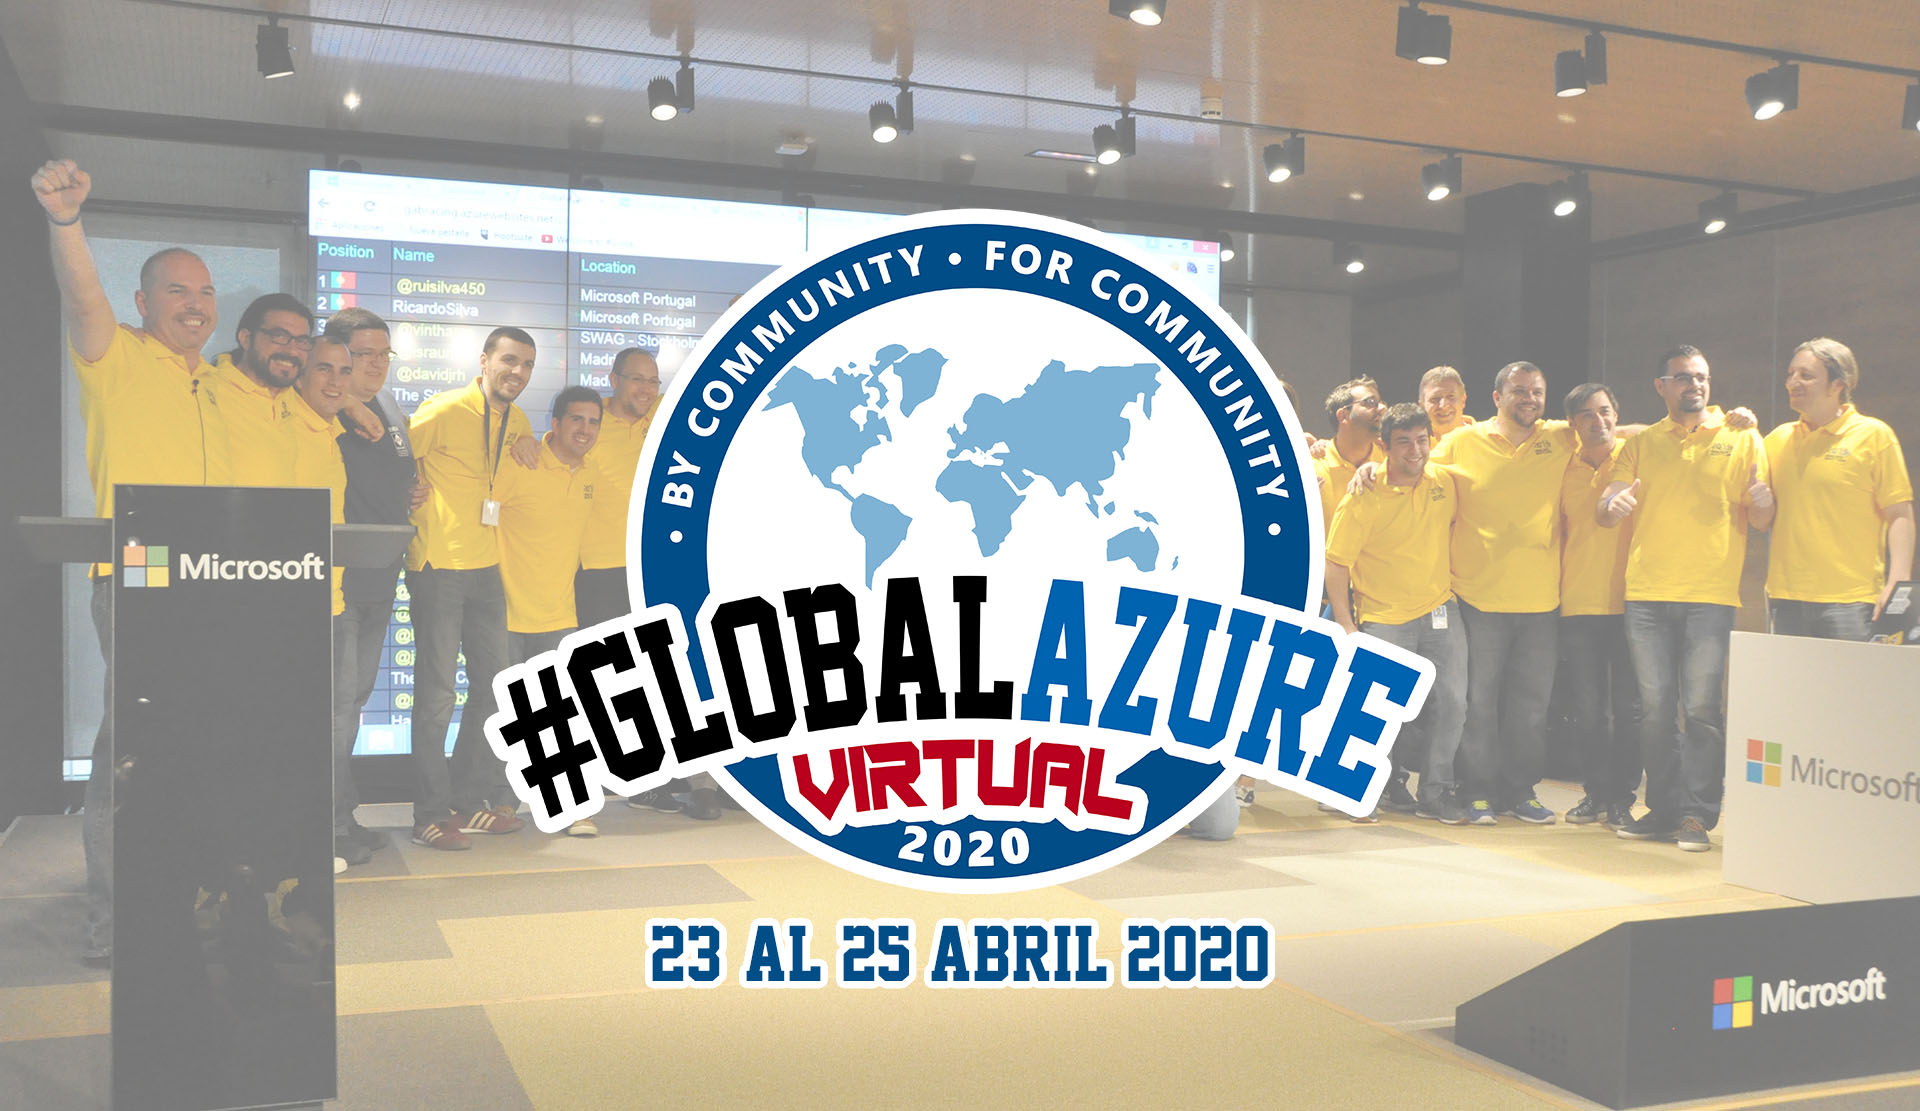 Global Azure Virtual 2020